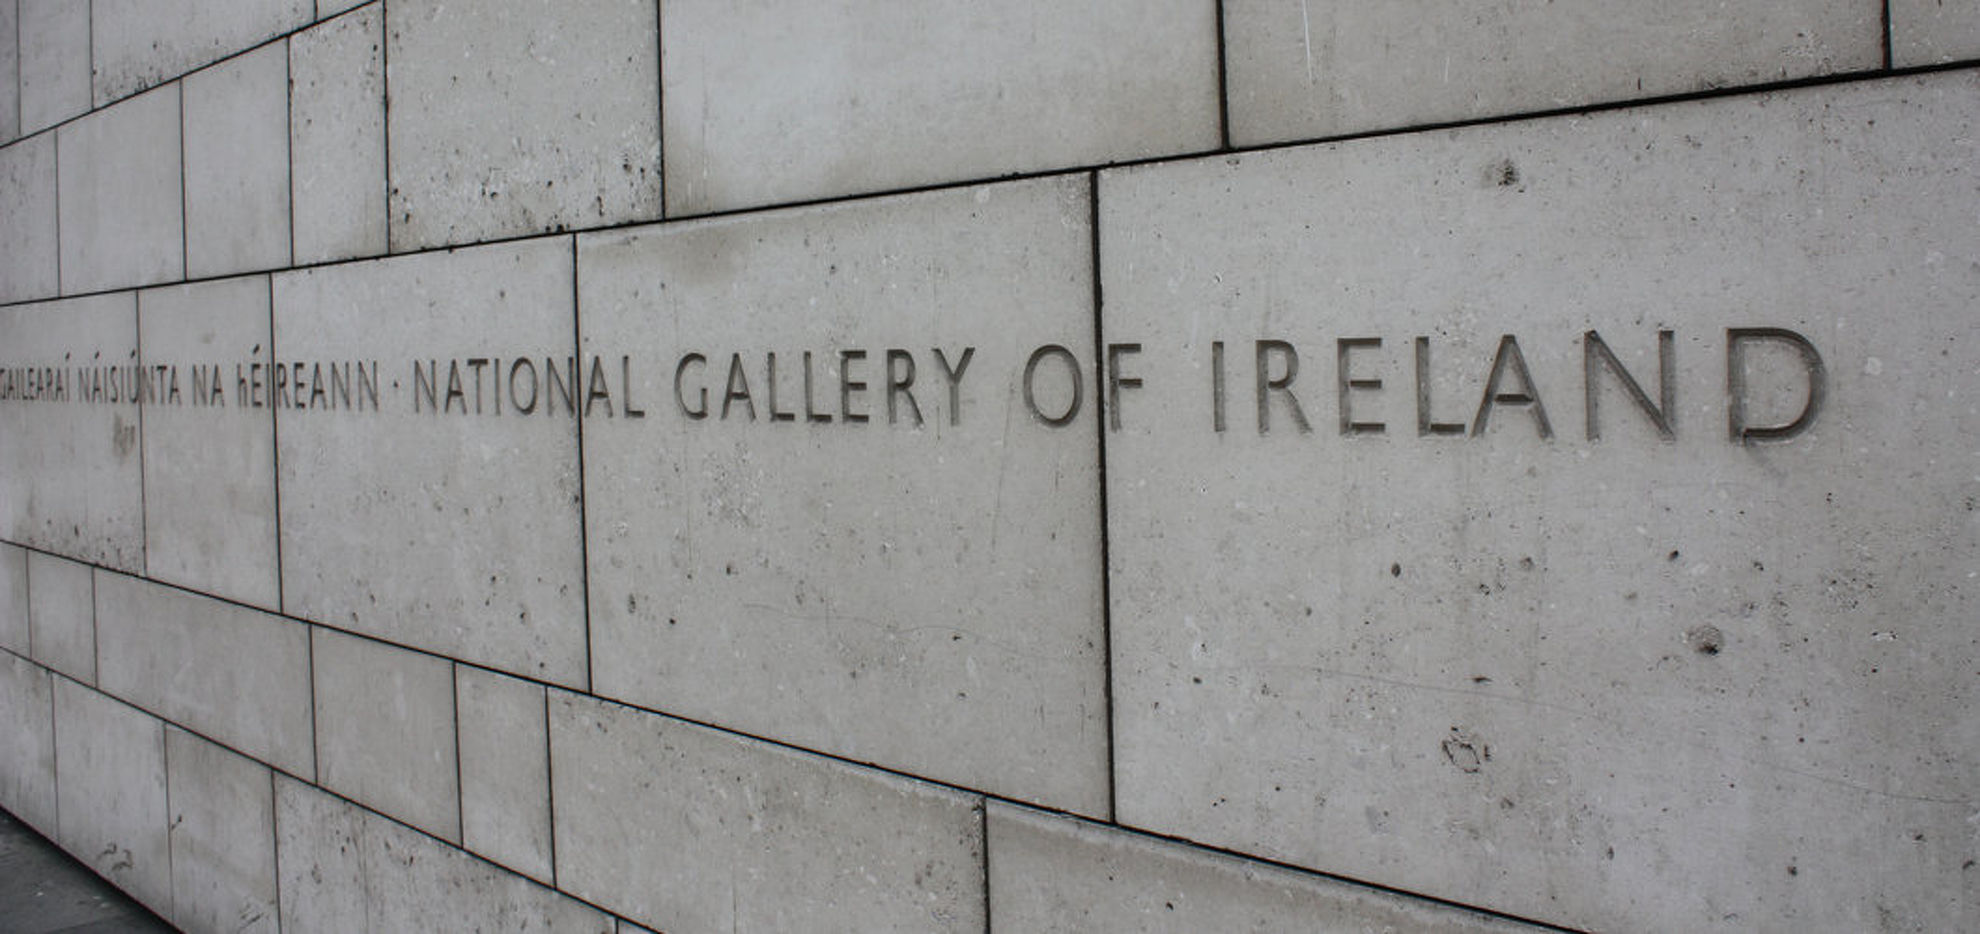 Explore The National Gallery of Ireland